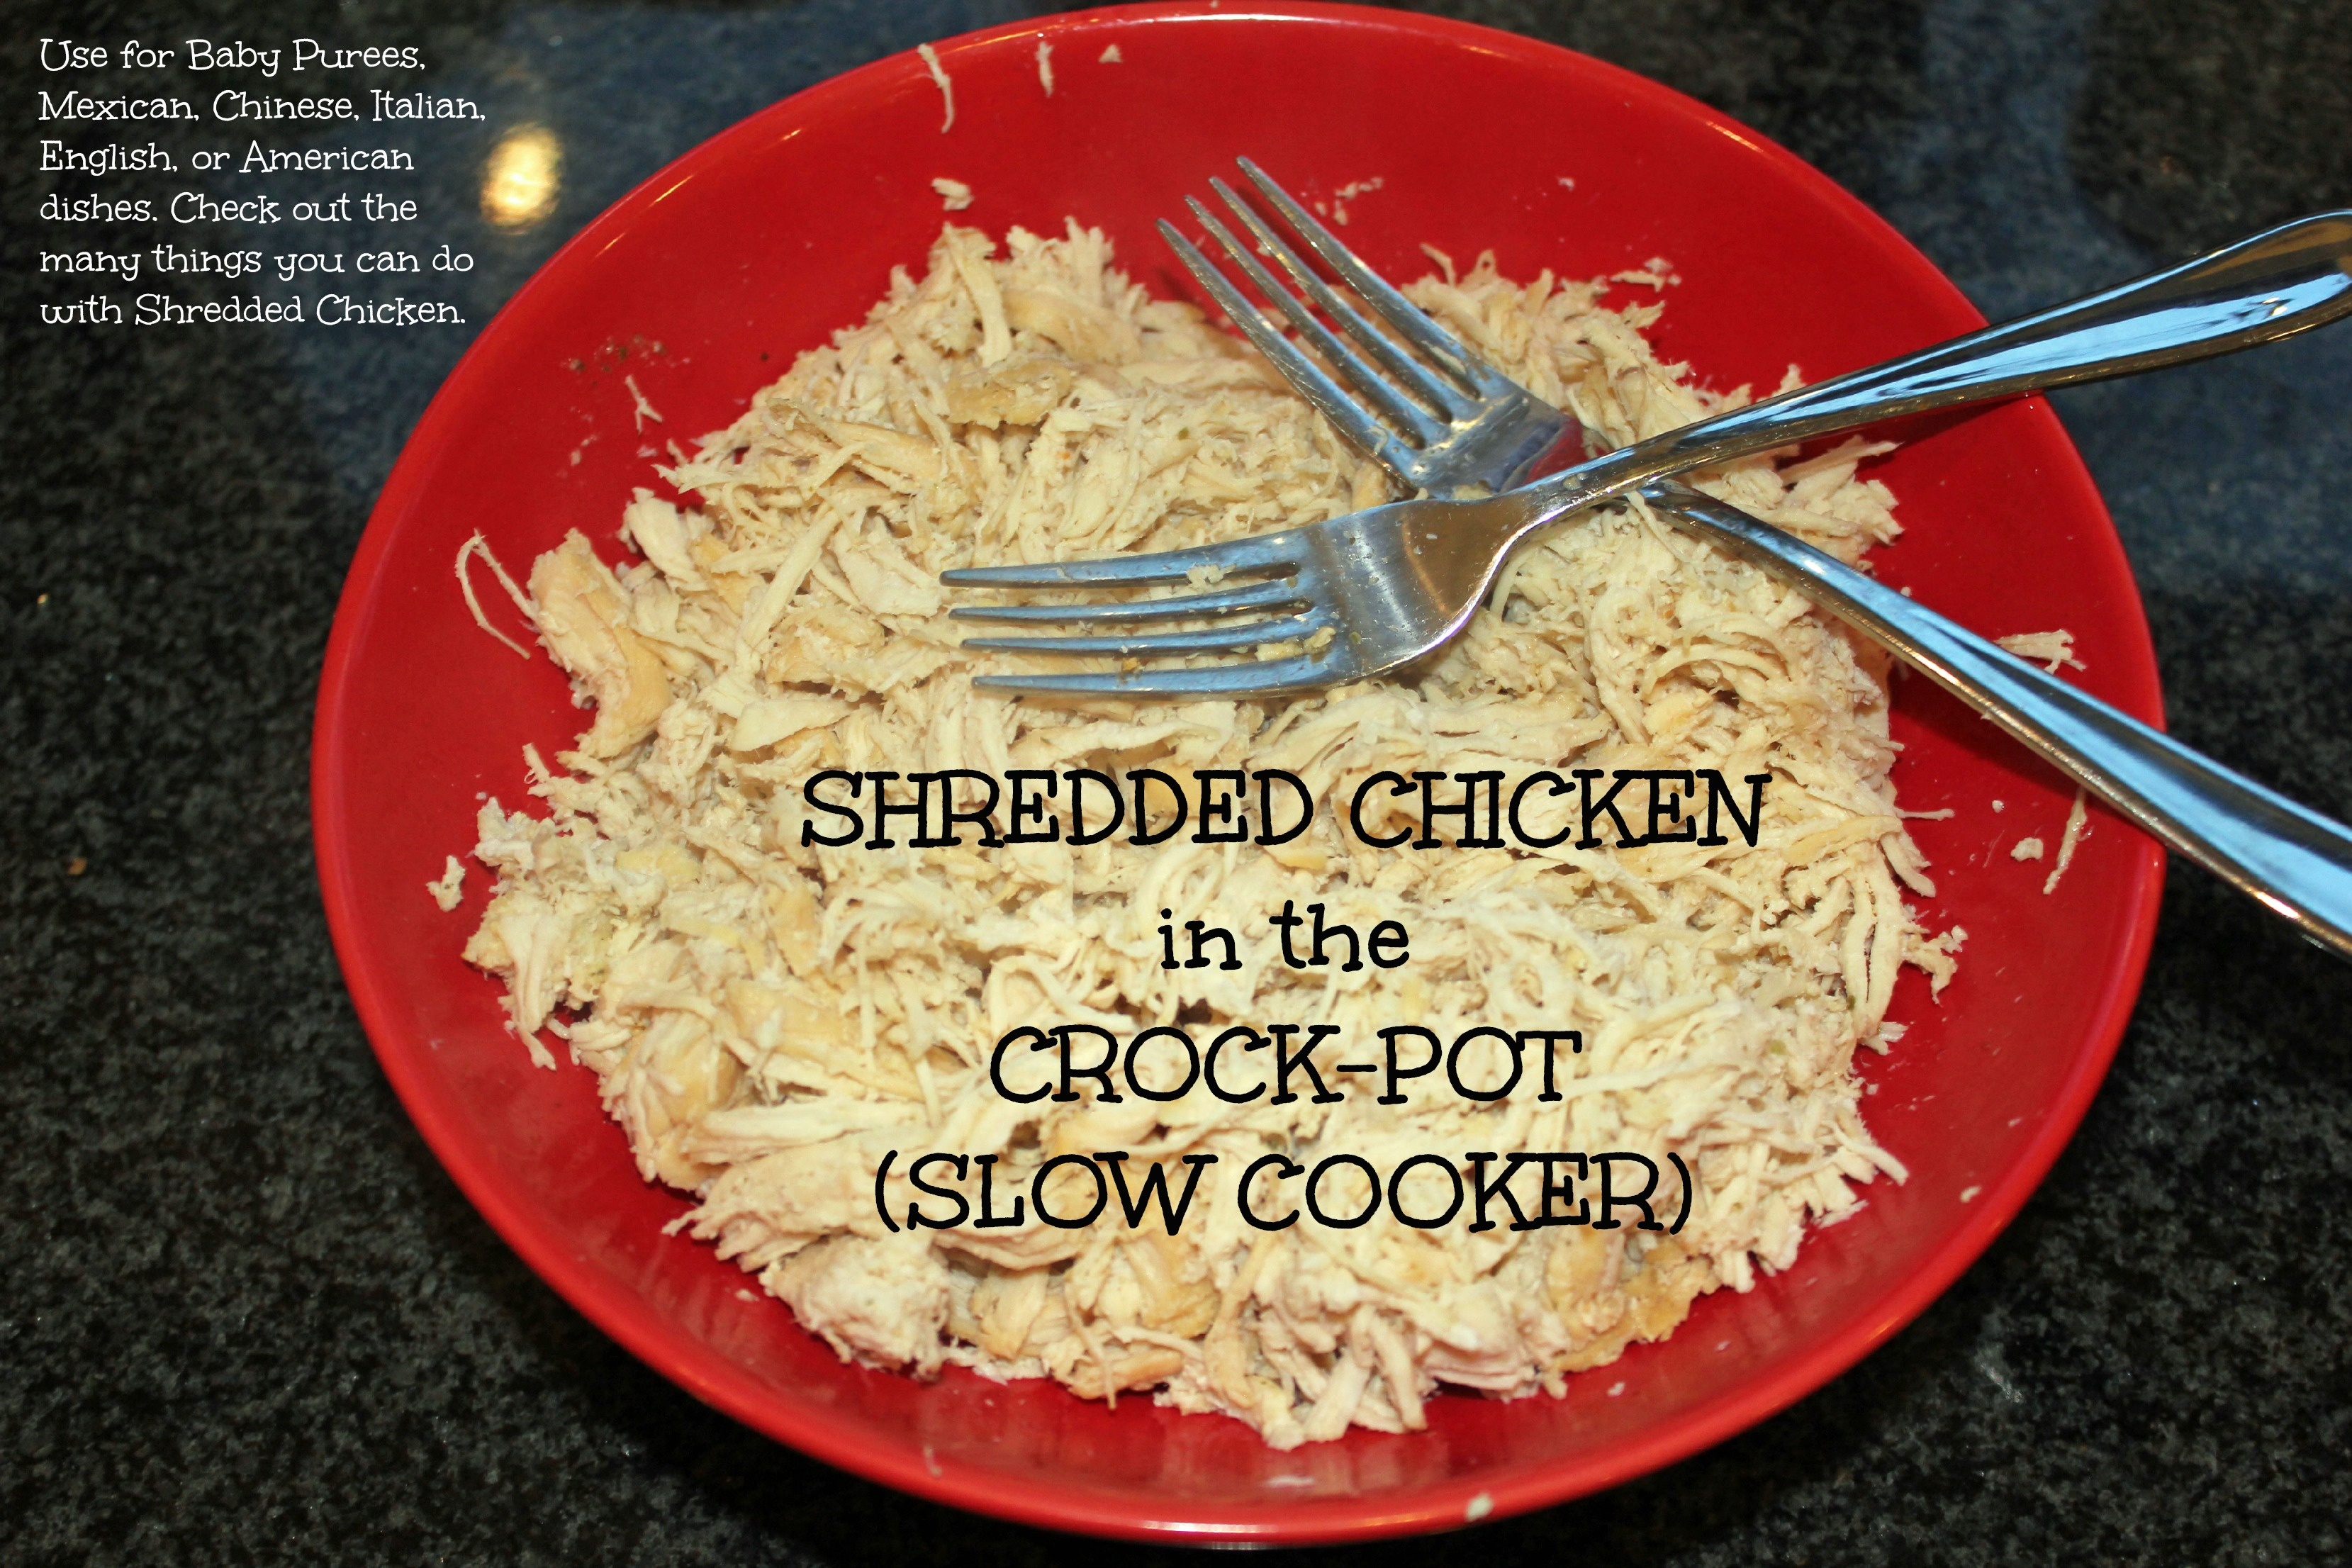 How to make crockpot chicken into a plethora of meals